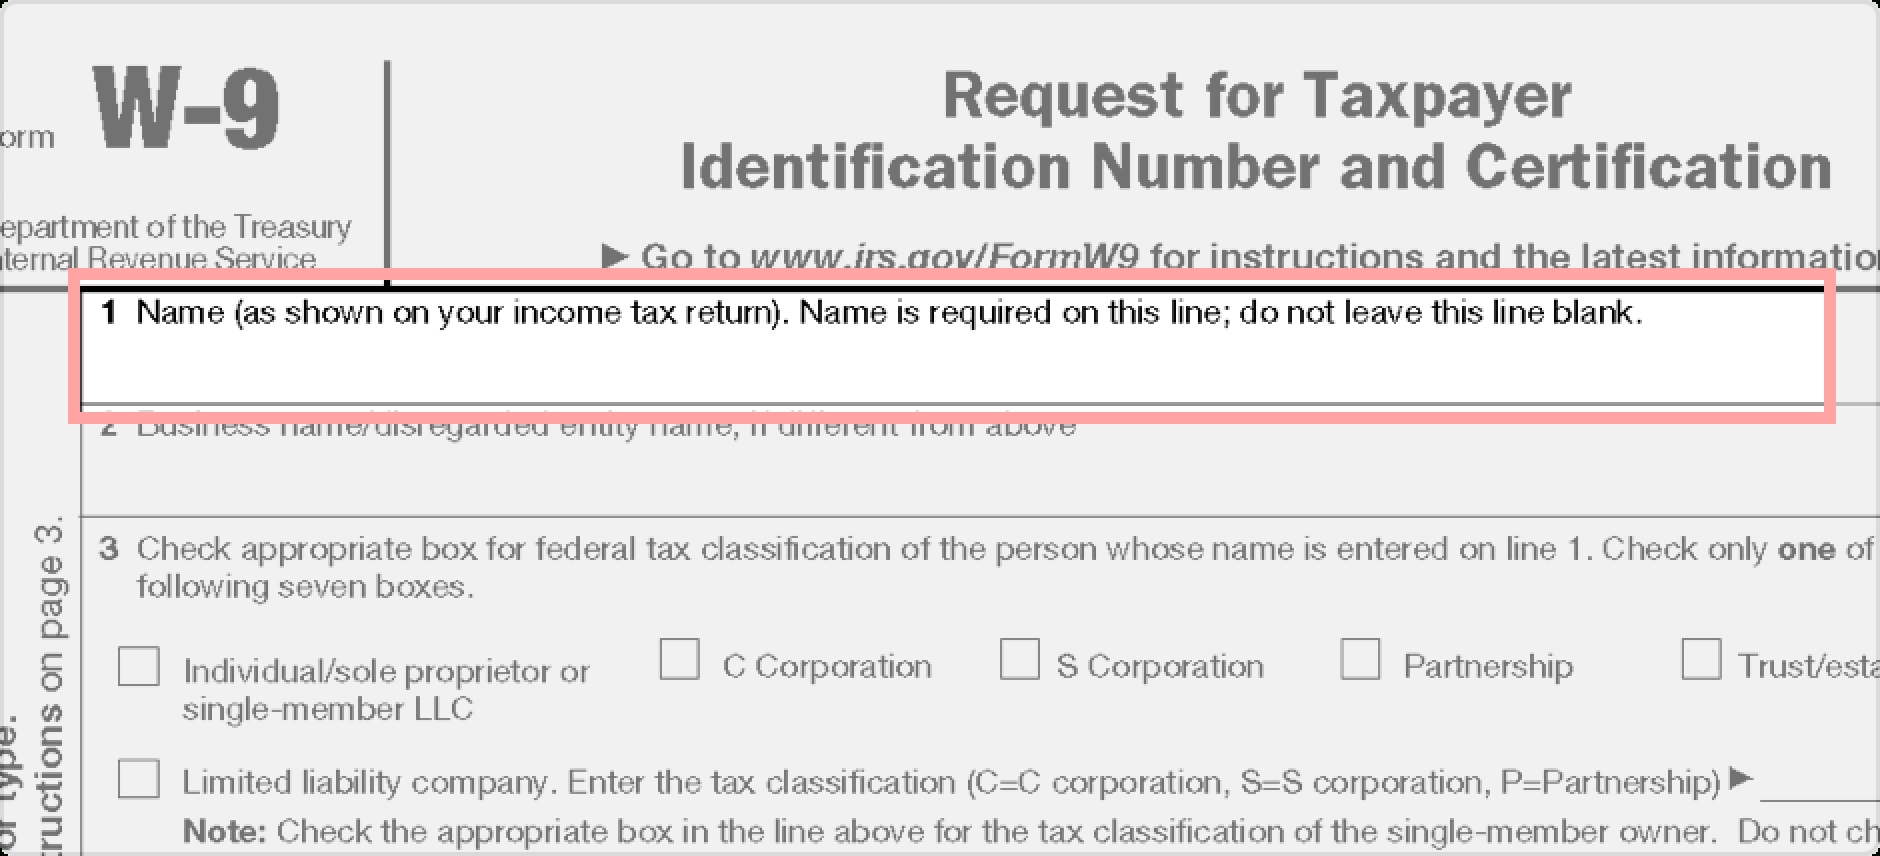 W-9 Form: Fillable, Printable, Download Free. 2019 Instructions-Blank W9 For 2020